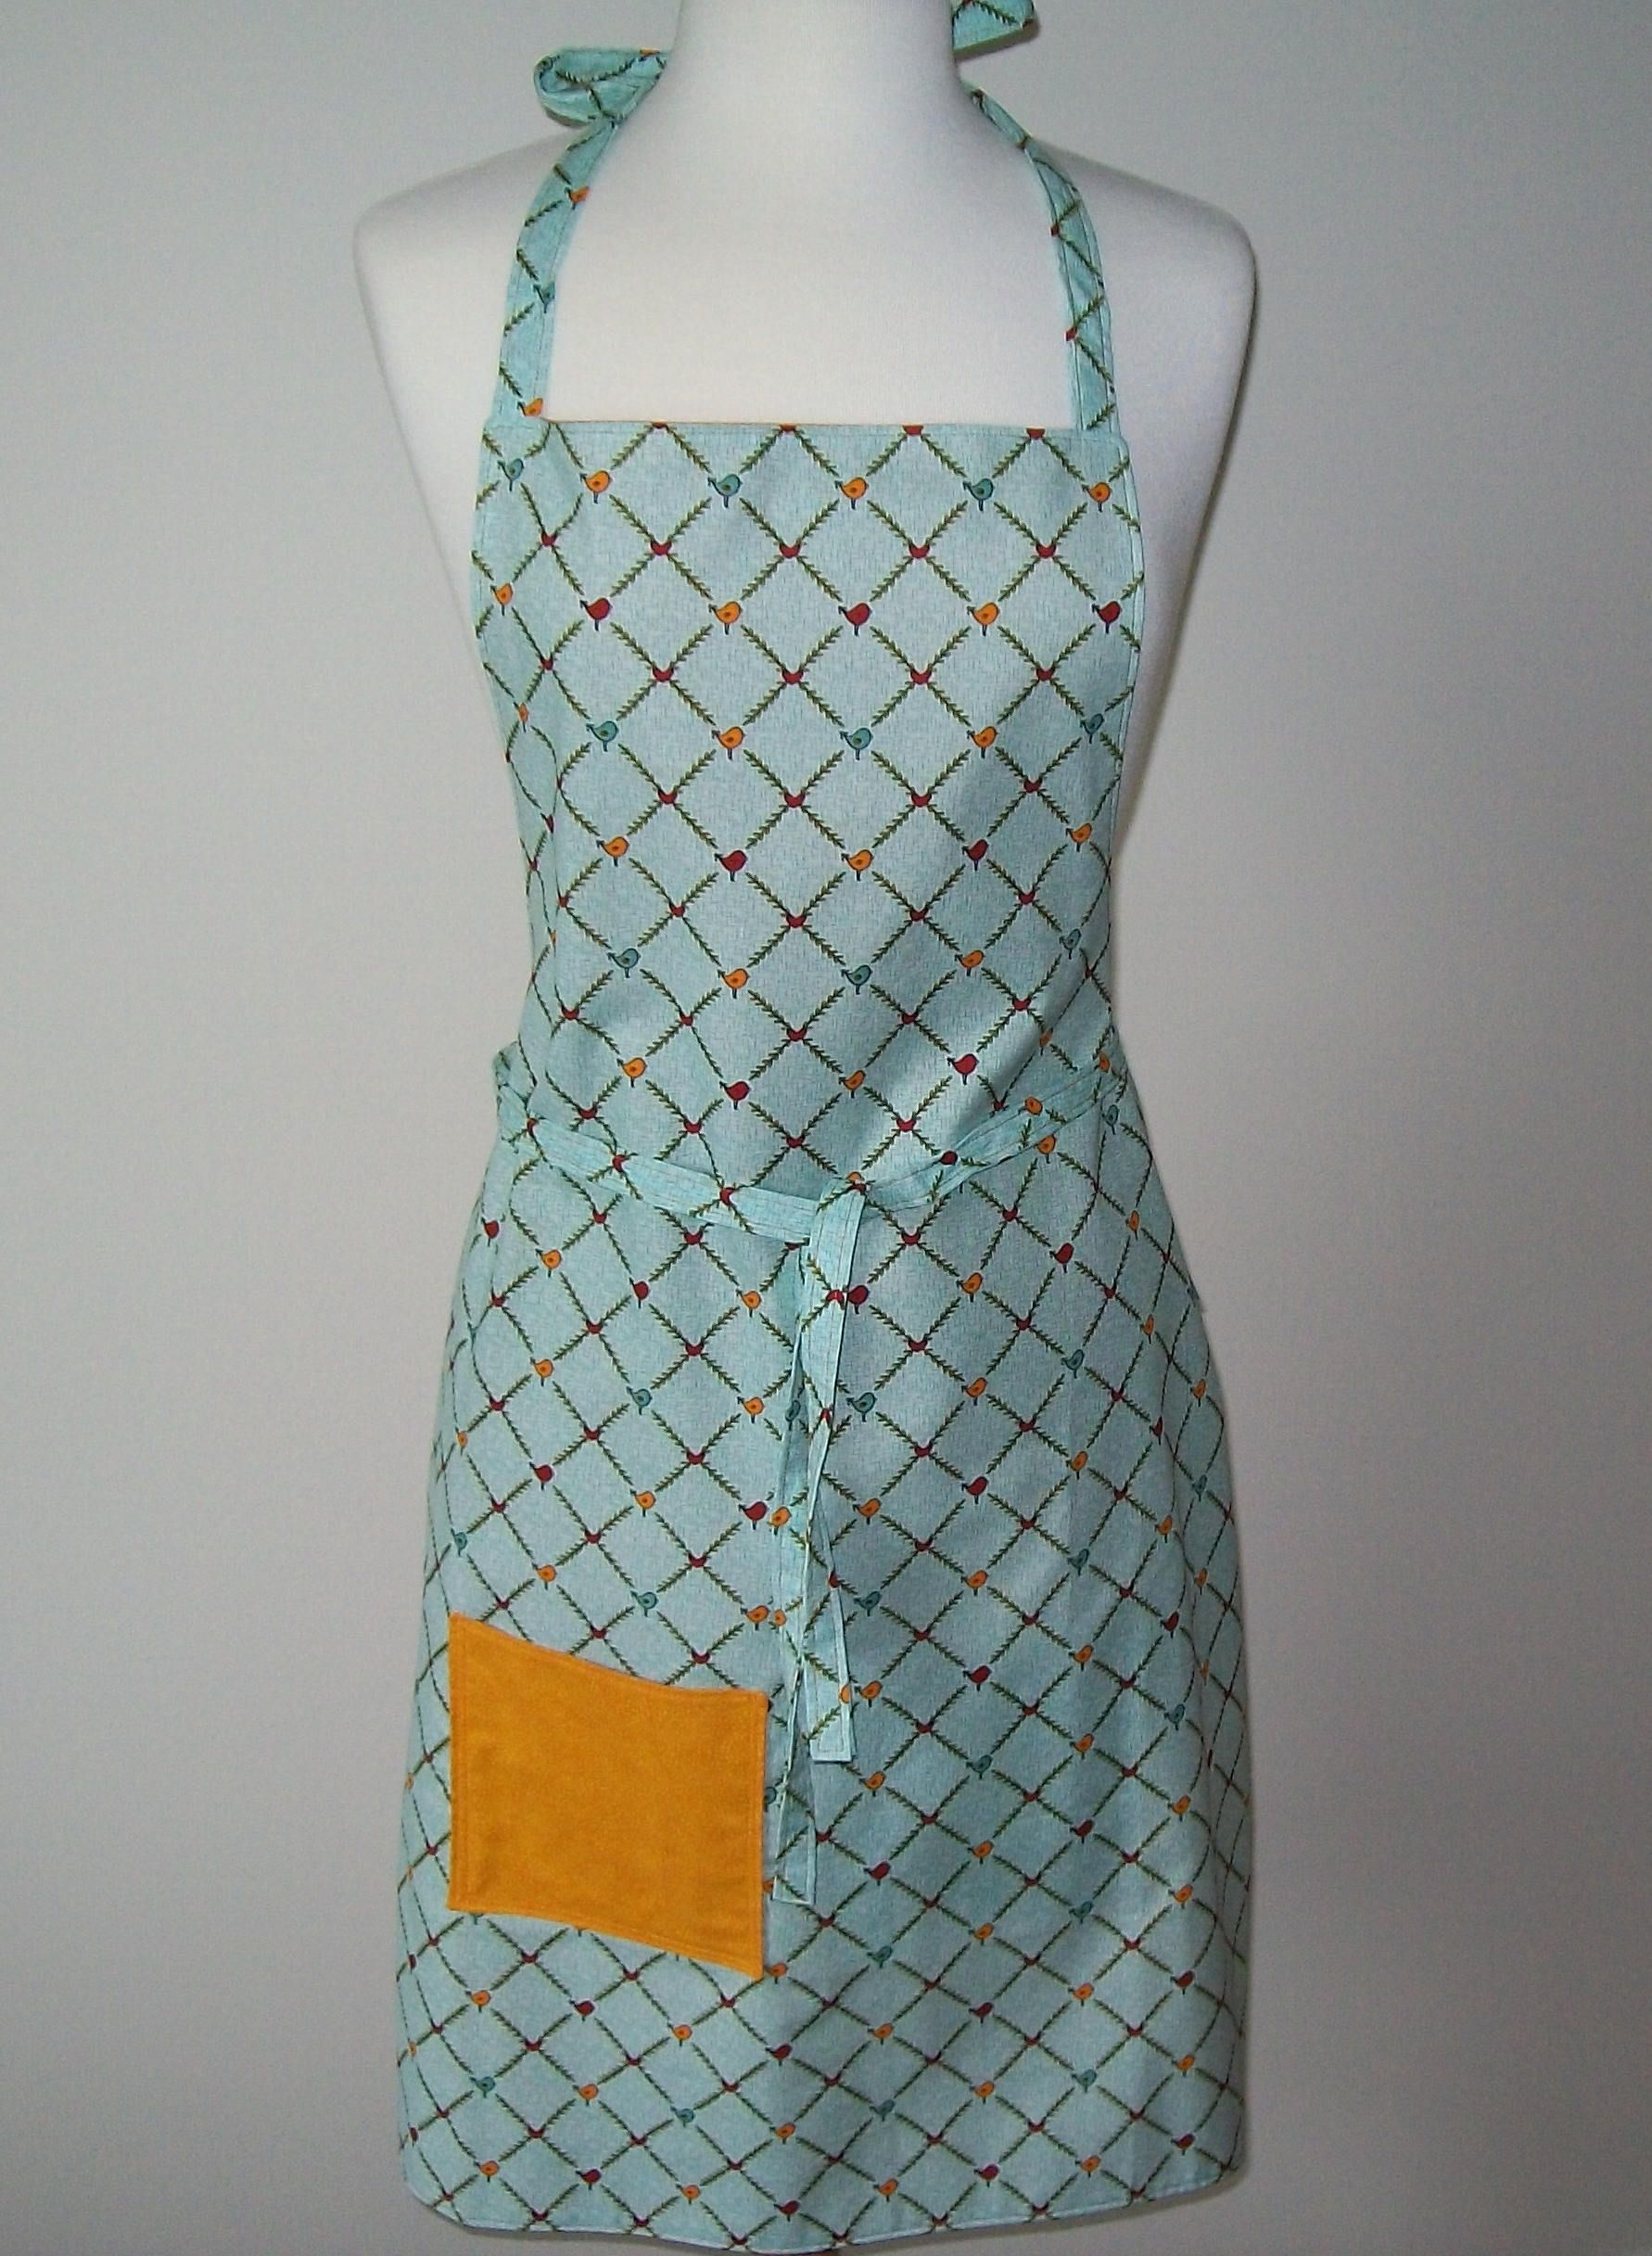 Turquoise Apron - reversible - birds - gold aqua red - full lined ...